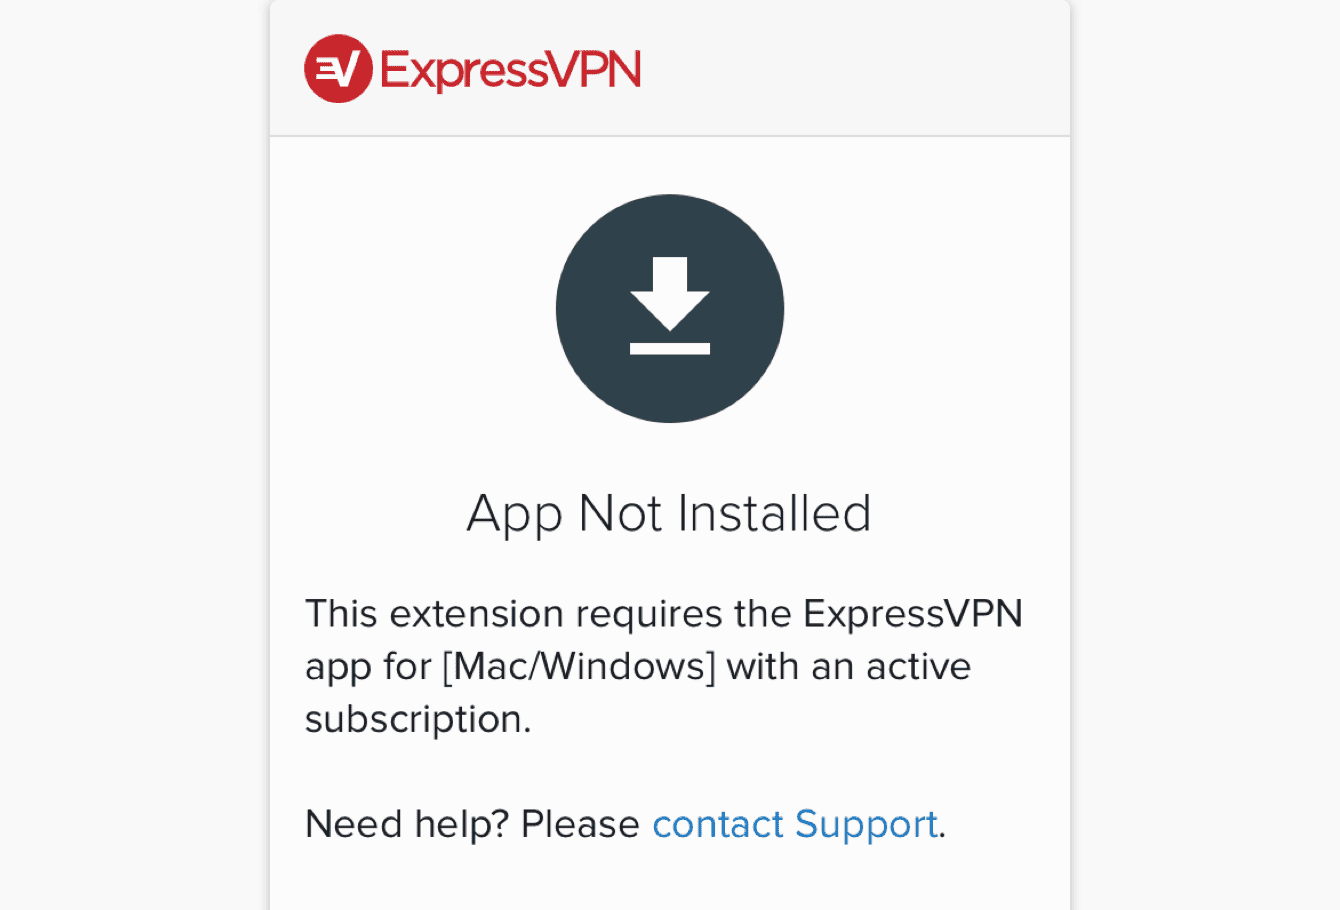 A screen that shows the ExpressVPN app is not installed.